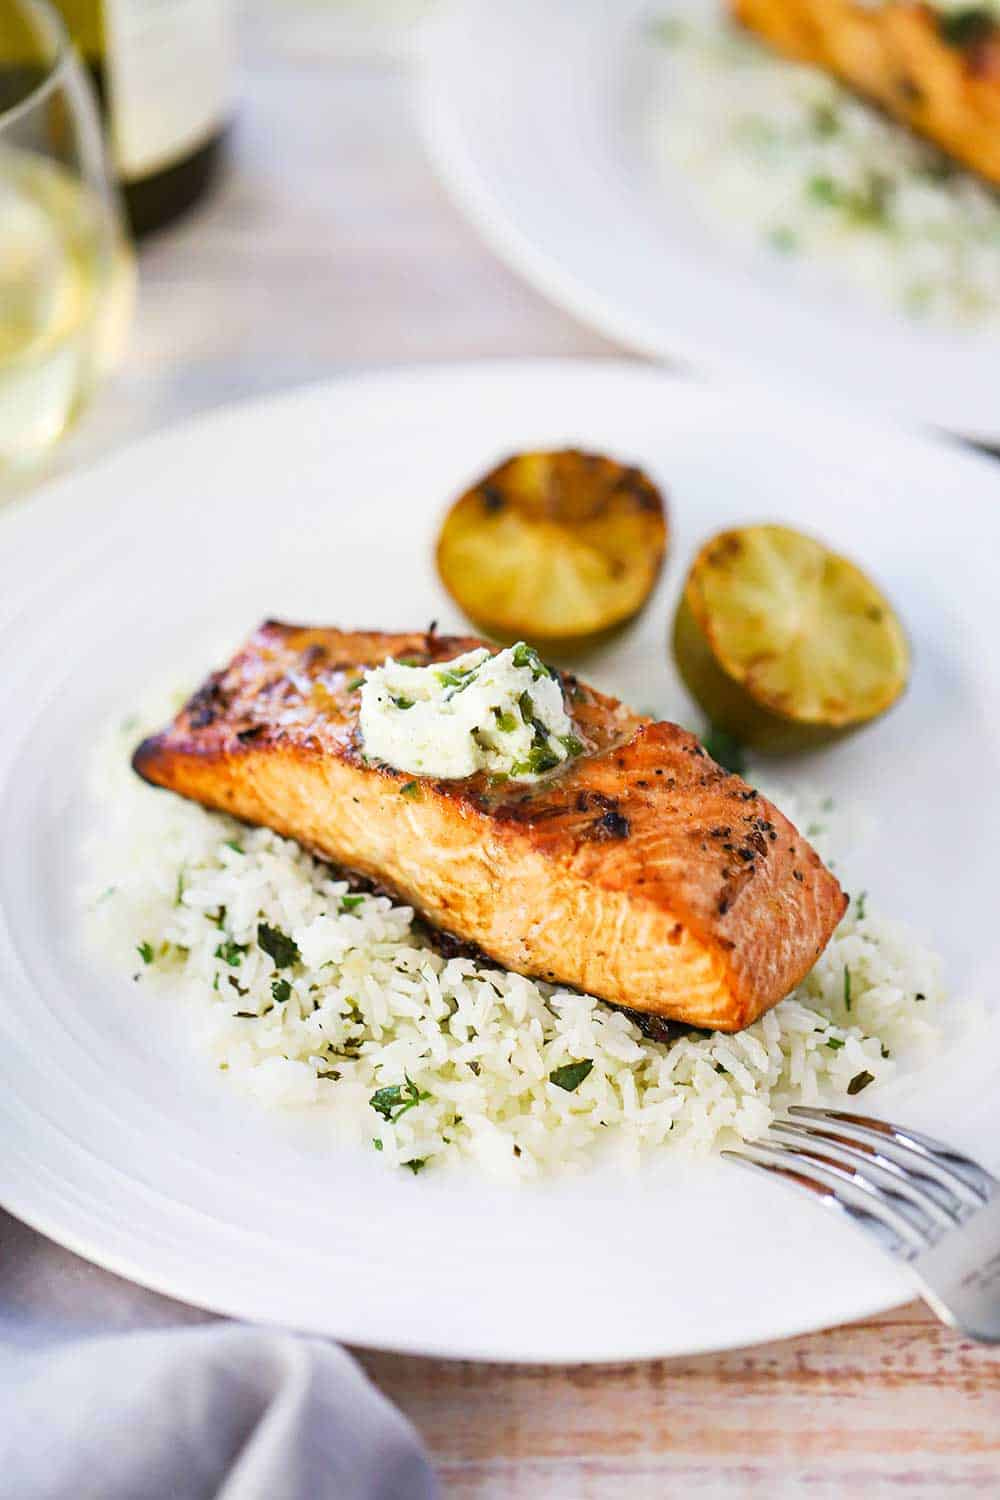 A grilled salmon fillet sitting on top of a bed of cilantro rice with poblano compound butter melting on top of the dish with two grilled limes halves nearby.